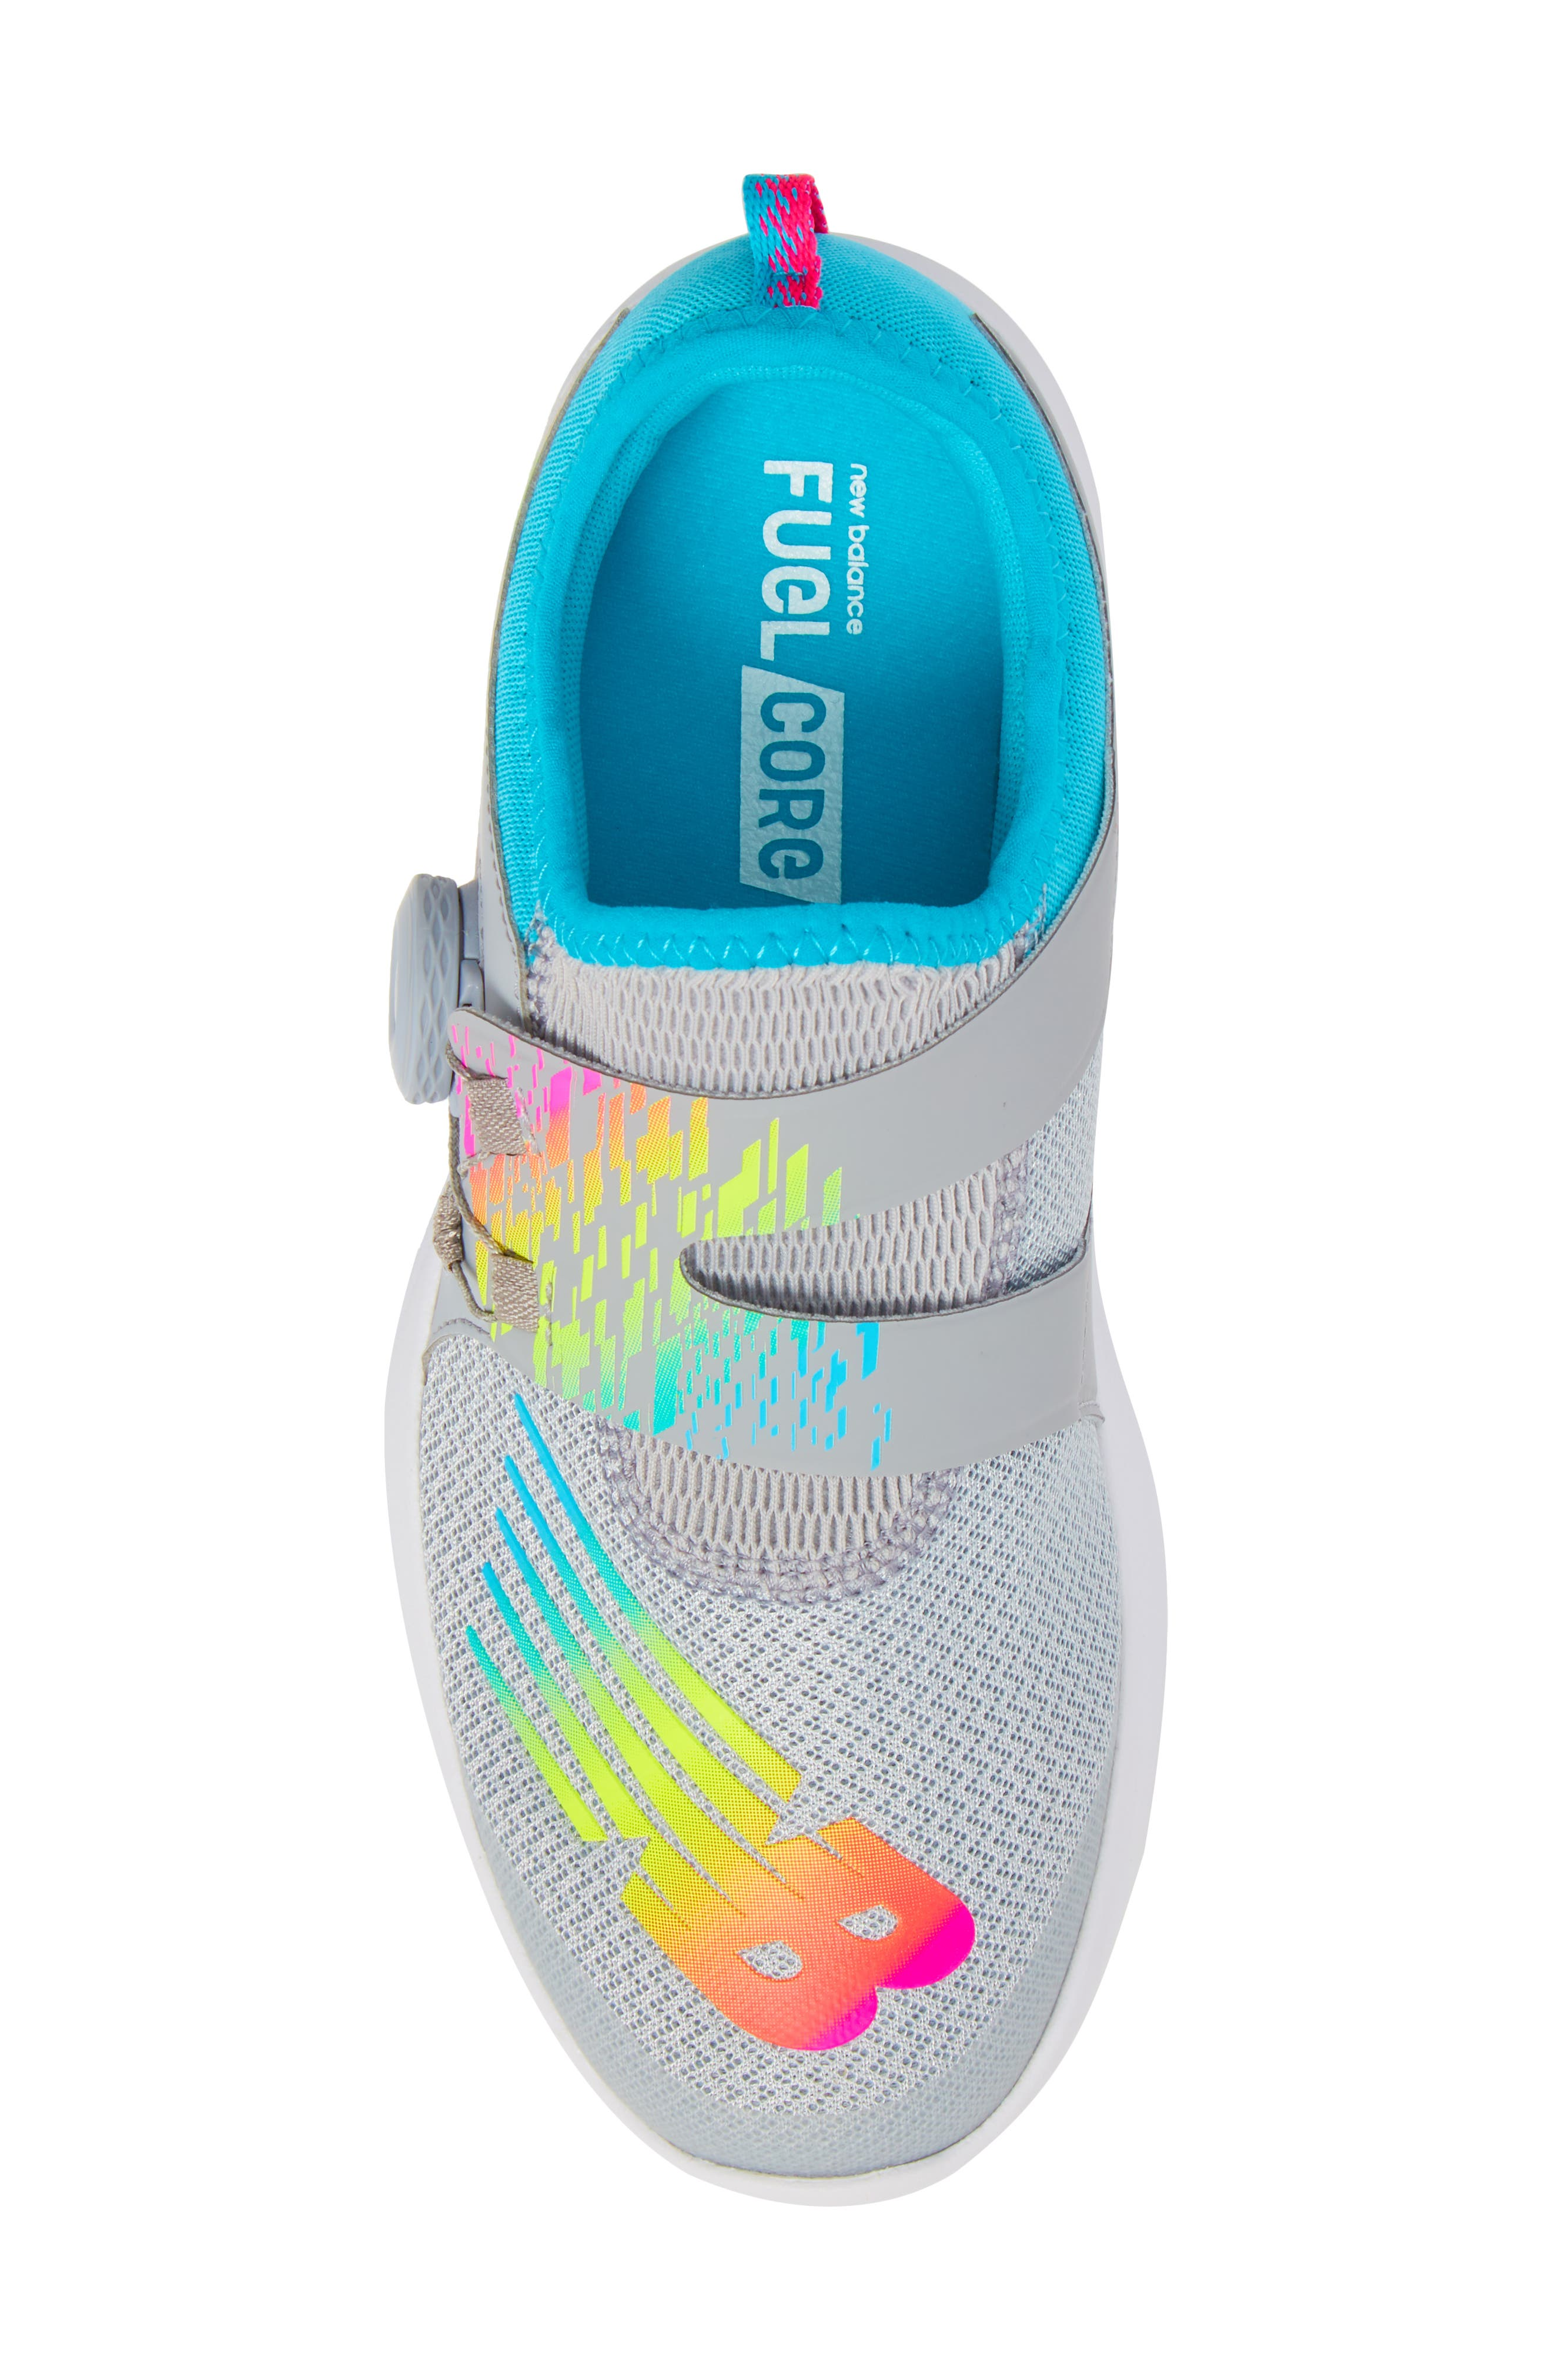 BKO Running Shoe,                             Alternate thumbnail 14, color,